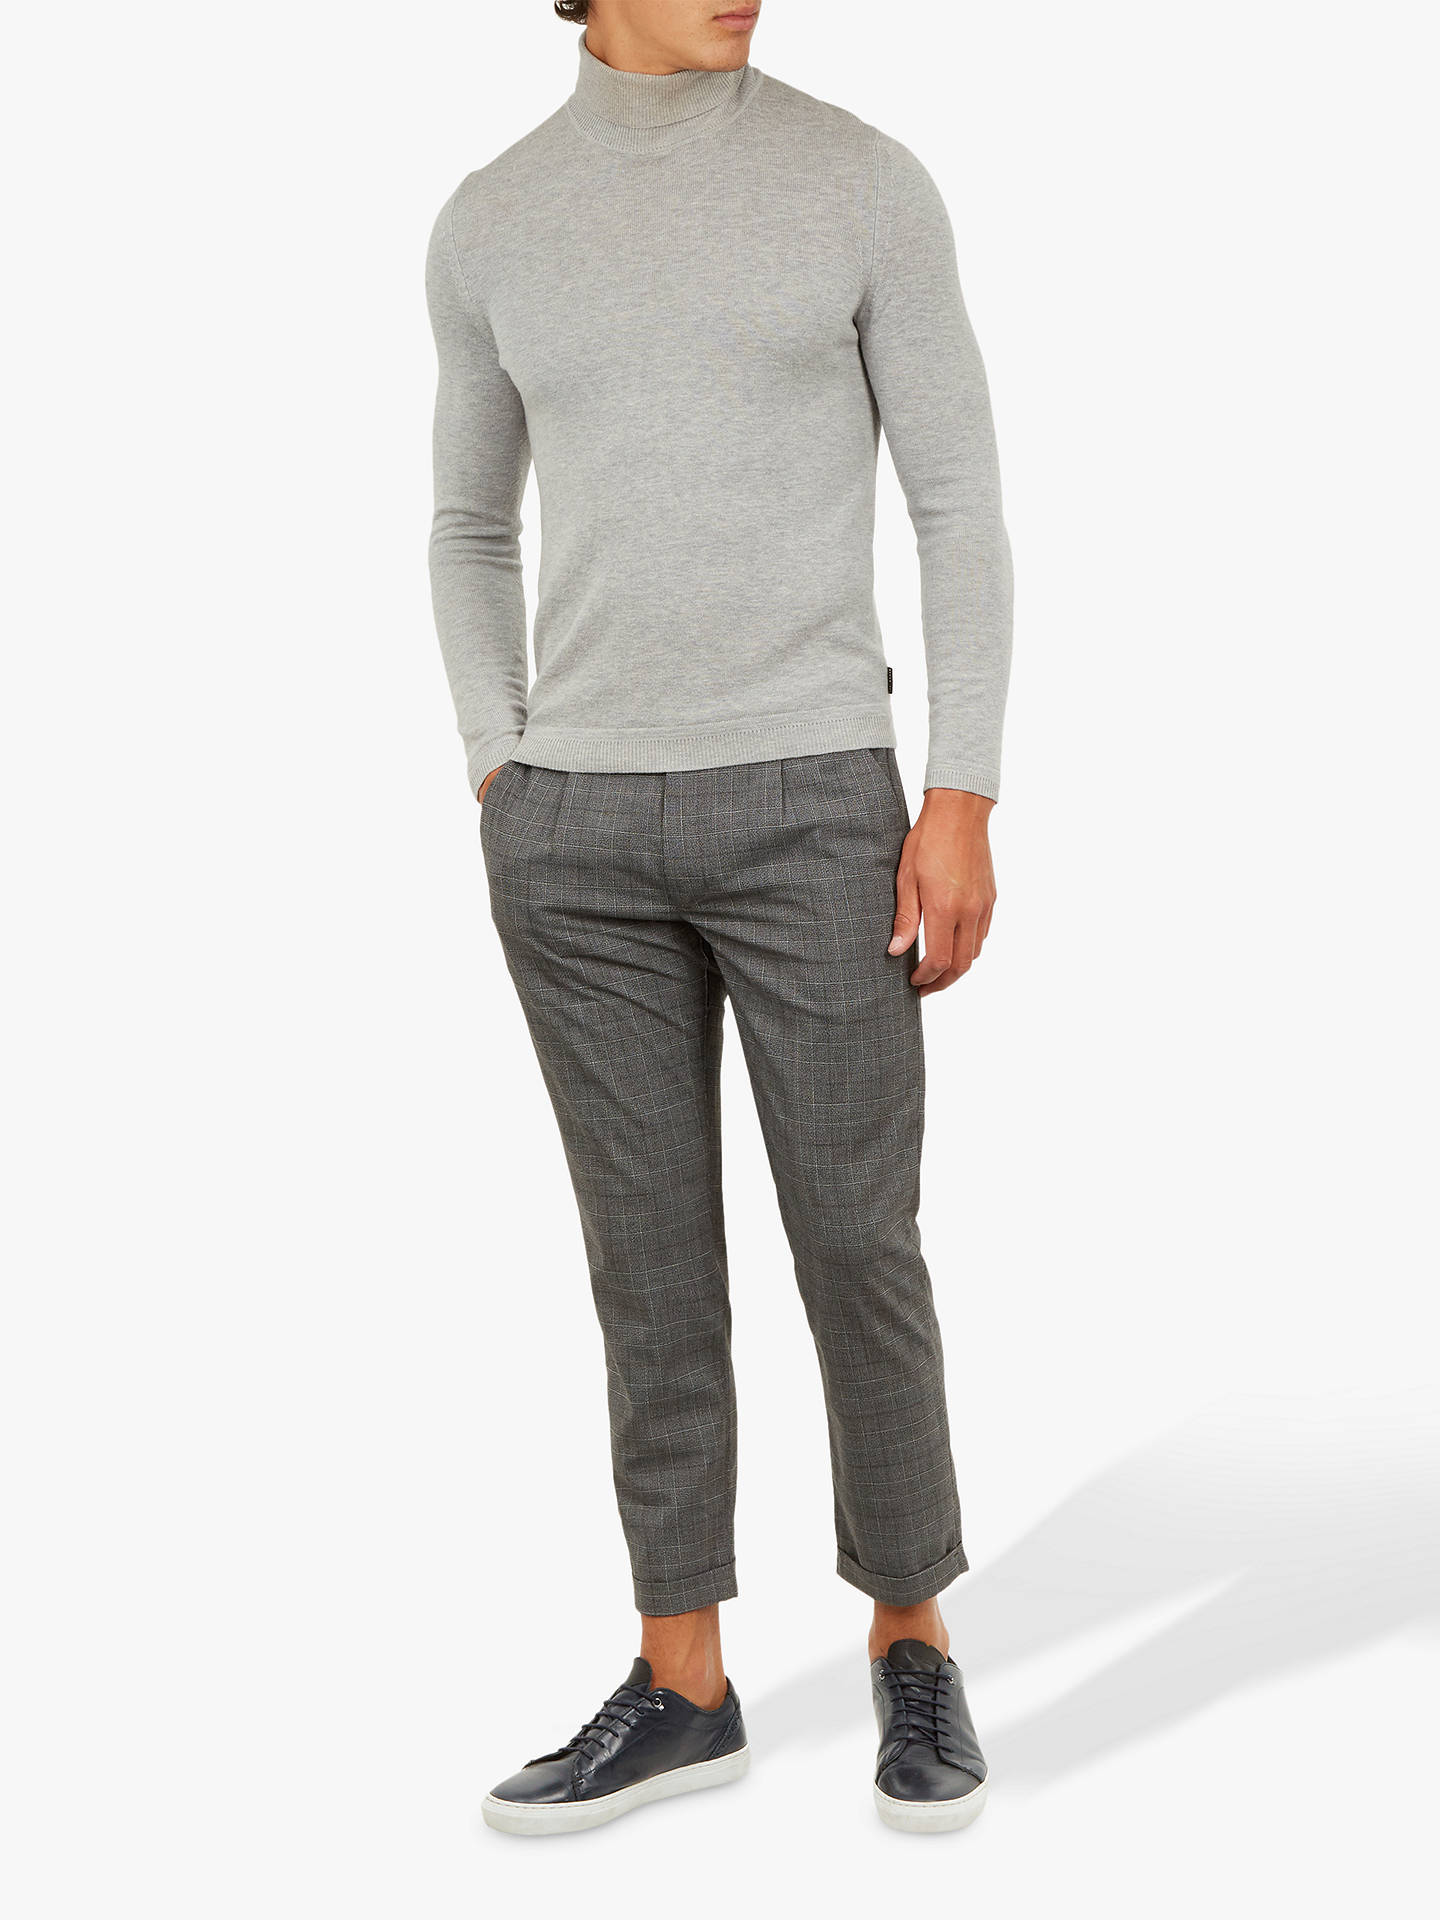 BuyTed Baker Squared Trousers, Grey Mid, 40R Online at johnlewis.com